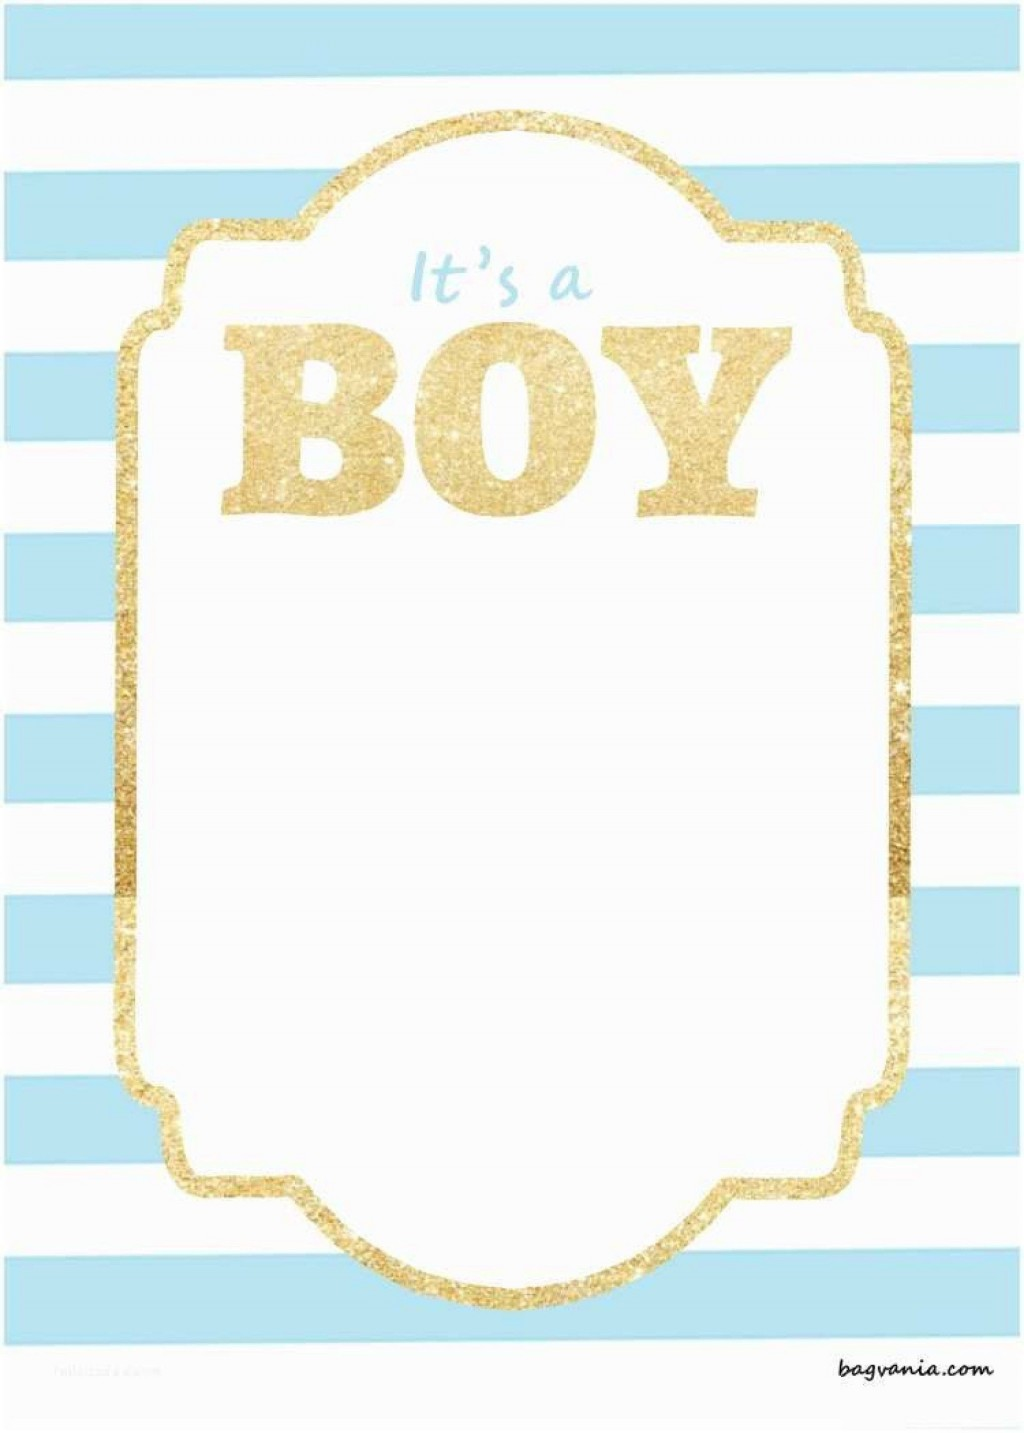 009 Stunning Free Baby Shower Invitation Template For Boy Idea Large